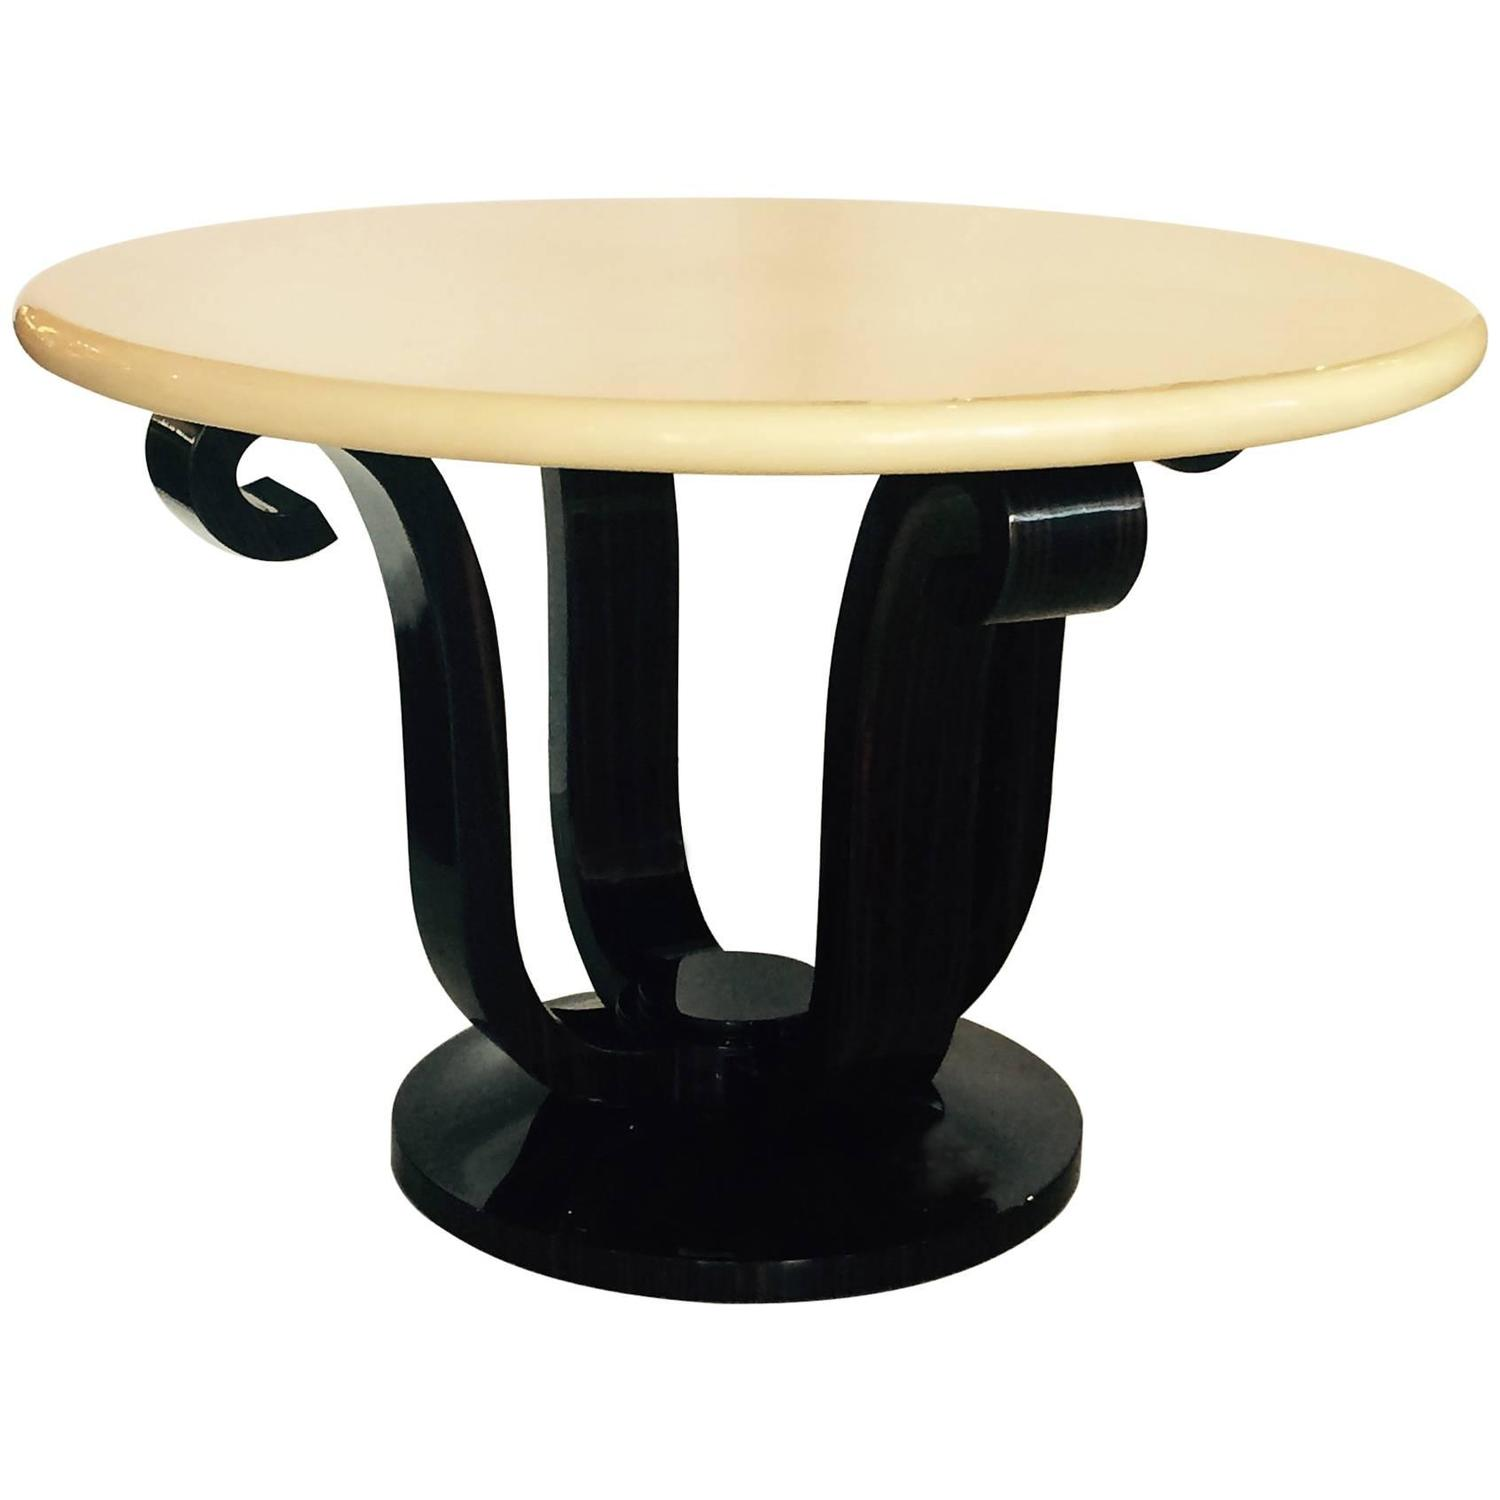 Foyer Table For Sale : Enrique garcel custom made foyer center table for sale at